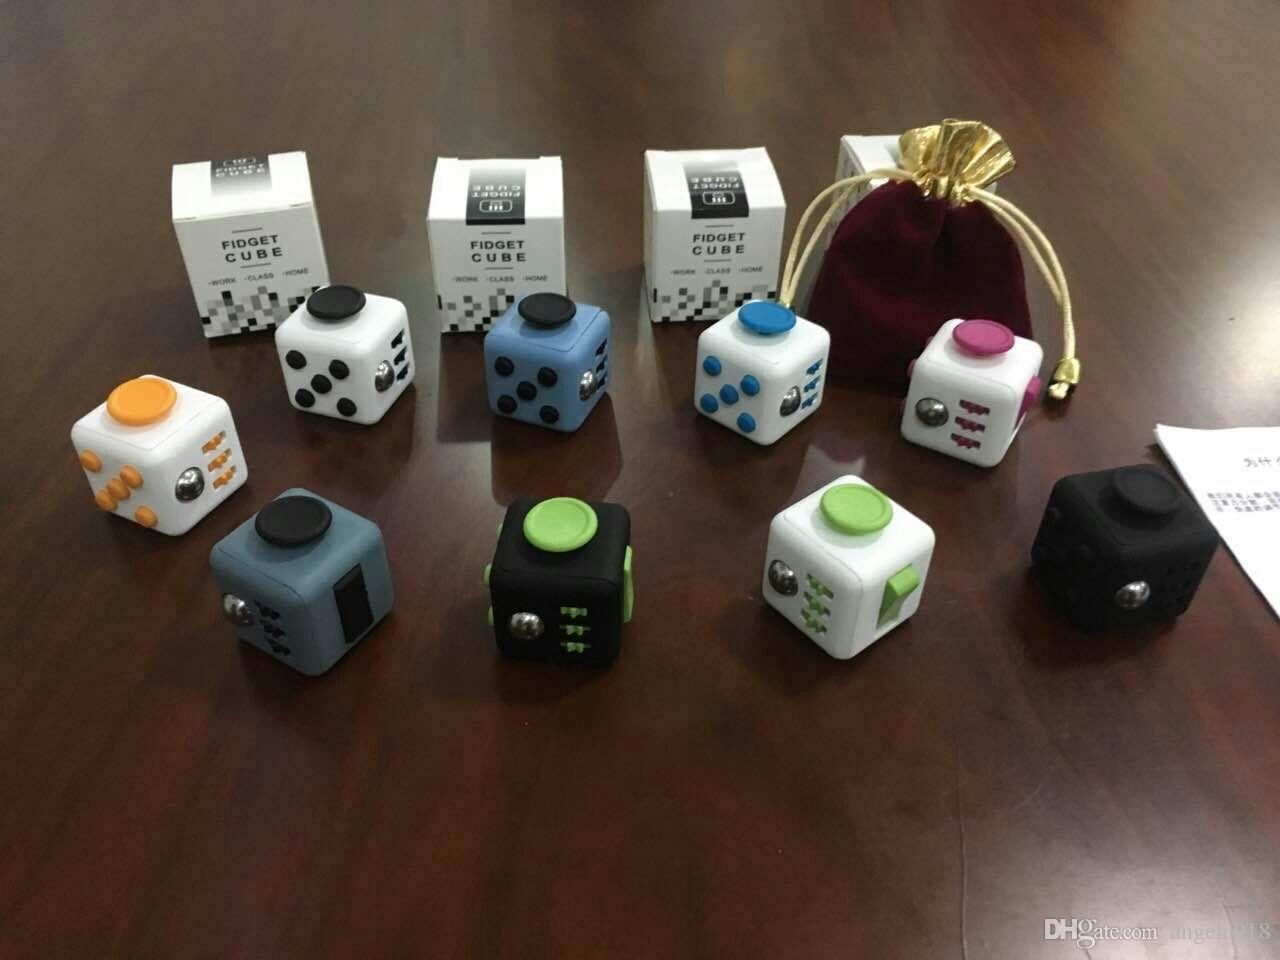 2017 new fidget cube the world 39 s first american original. Black Bedroom Furniture Sets. Home Design Ideas